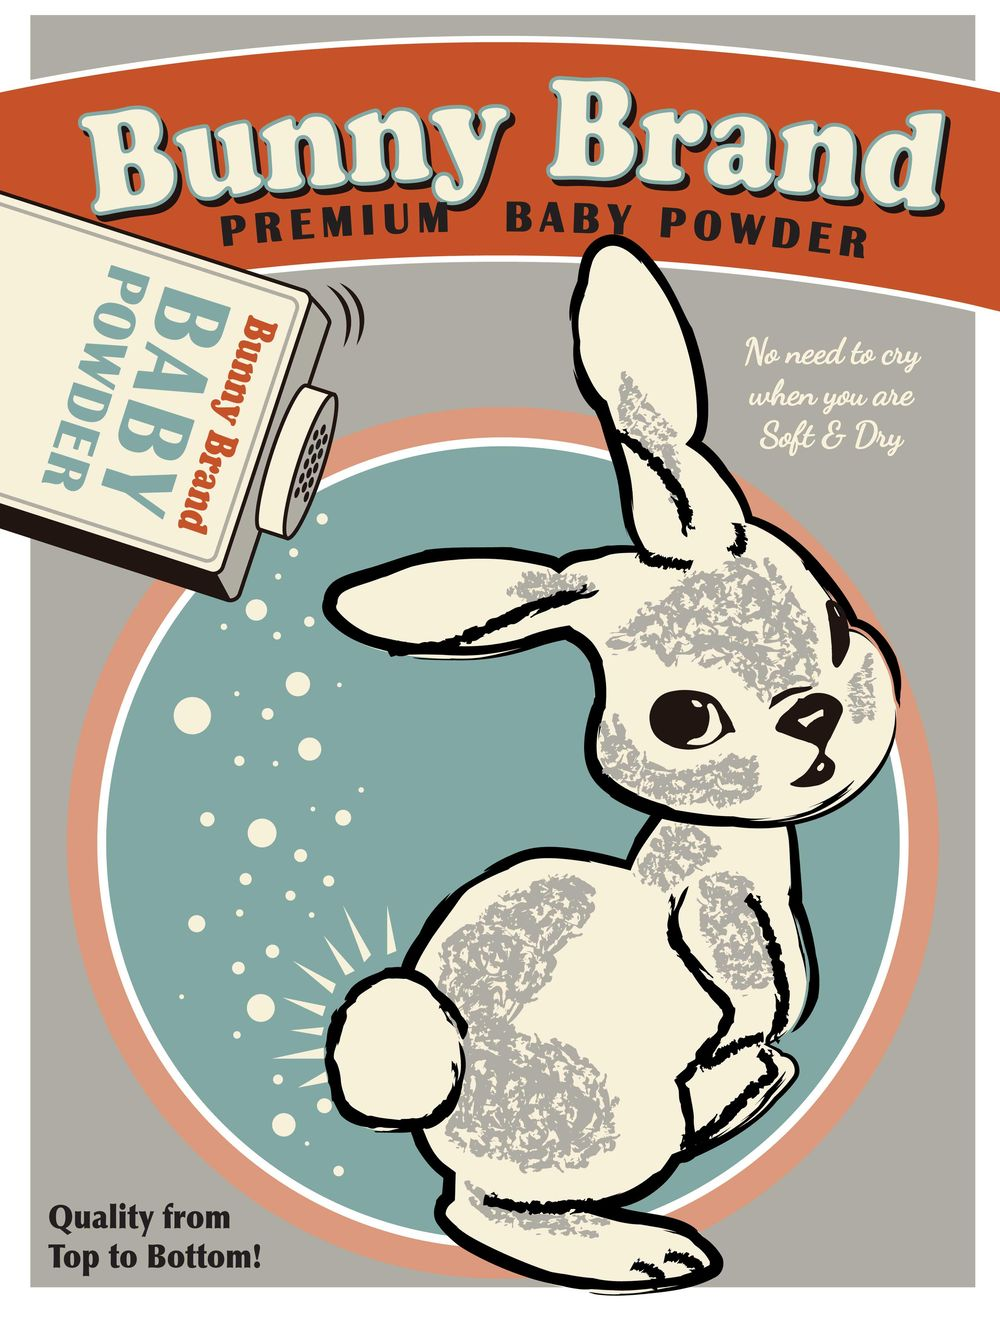 Bunny Brand vintage ad - image 3 - student project